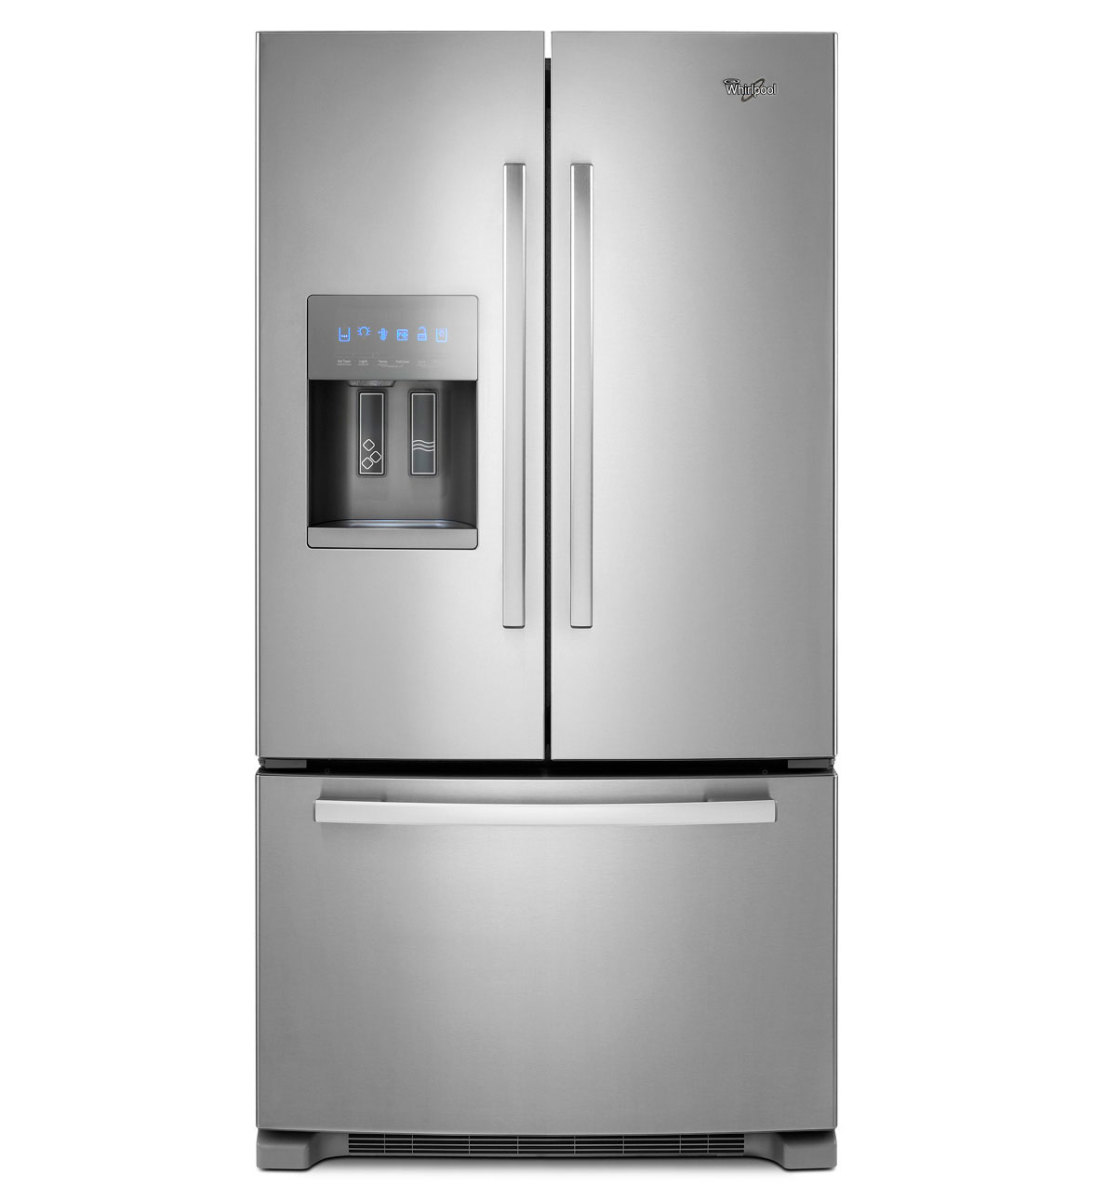 Riveting Most Common Reasons Your Refrigerator To Malction Dengarden Avanti Mini Fridge 1 7 Cu Ft Avanti Mini Fridge Not Ing houzz-03 Avanti Mini Fridge